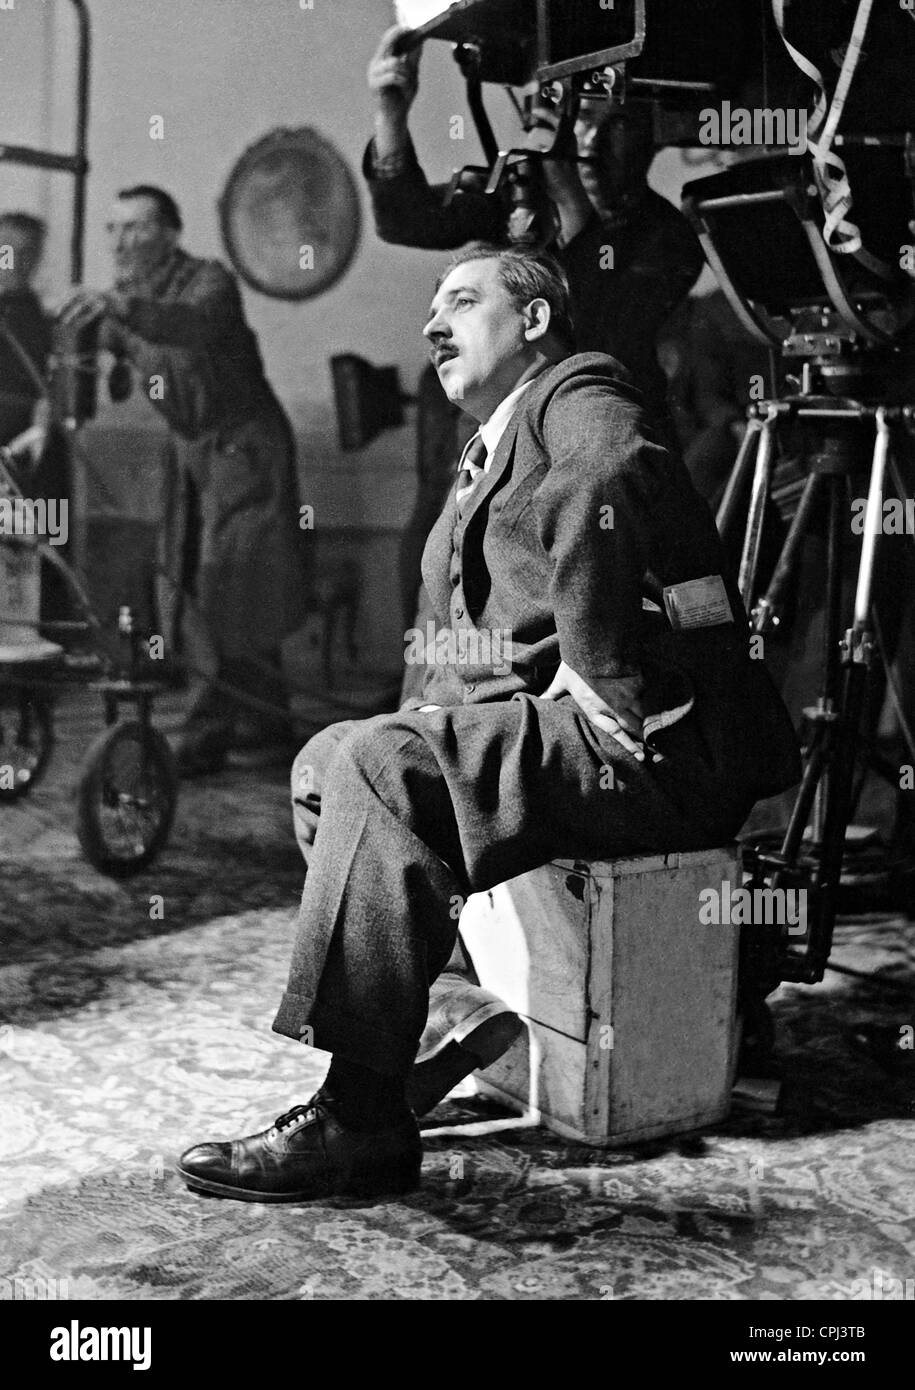 Karl Hartl during the filming of 'Two Merry Adventurers', 1937 - Stock Image